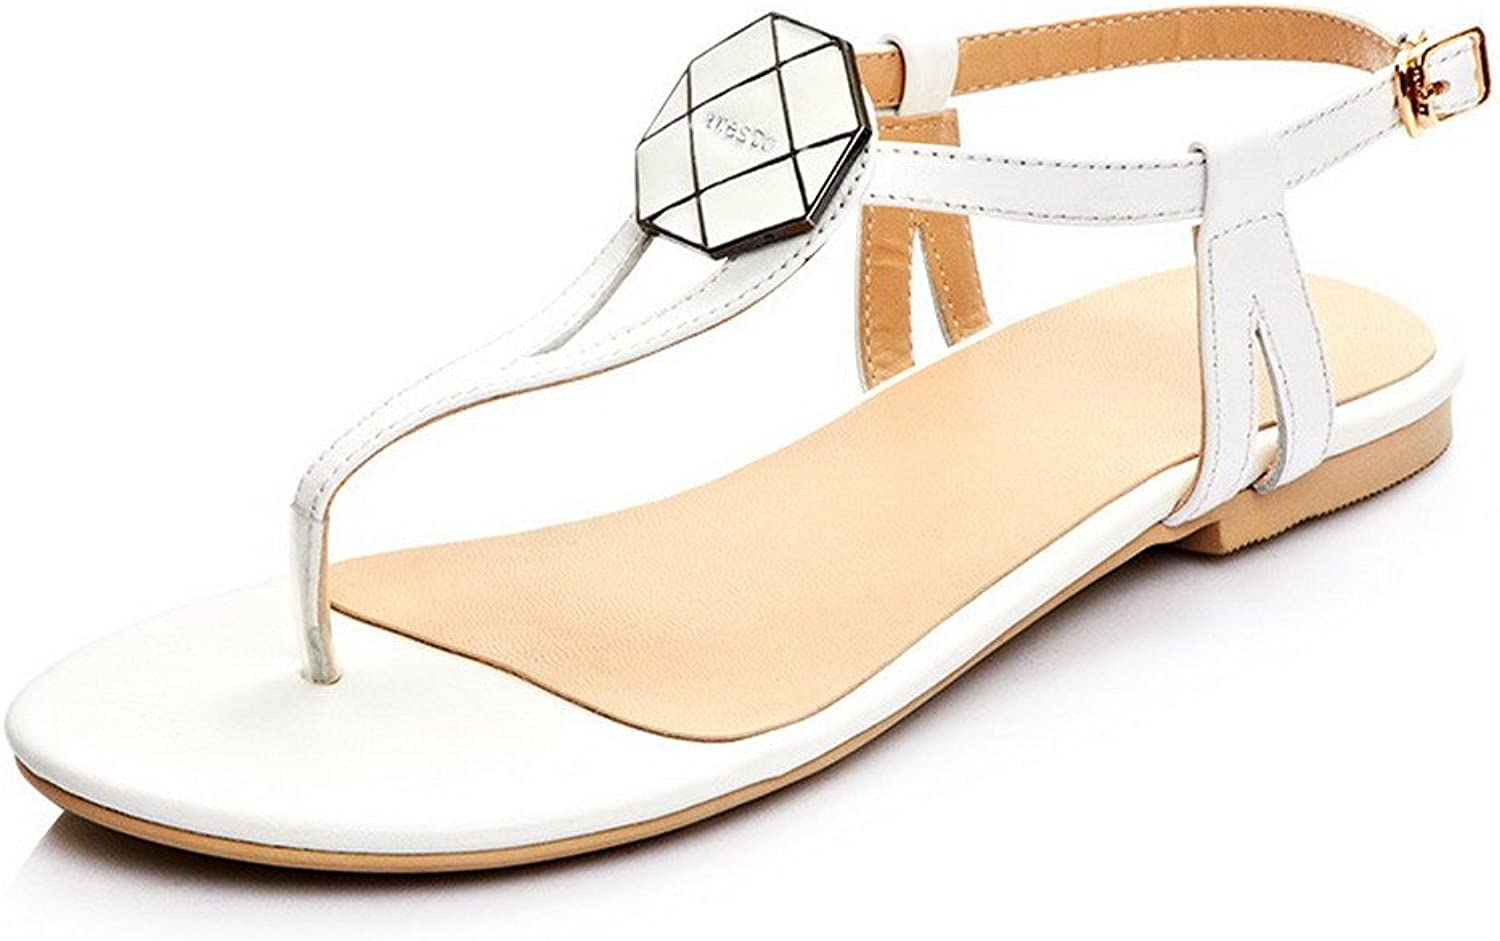 AmoonyFashion Women's Frosted Split Toe No Heel Pull On Solid Sandals